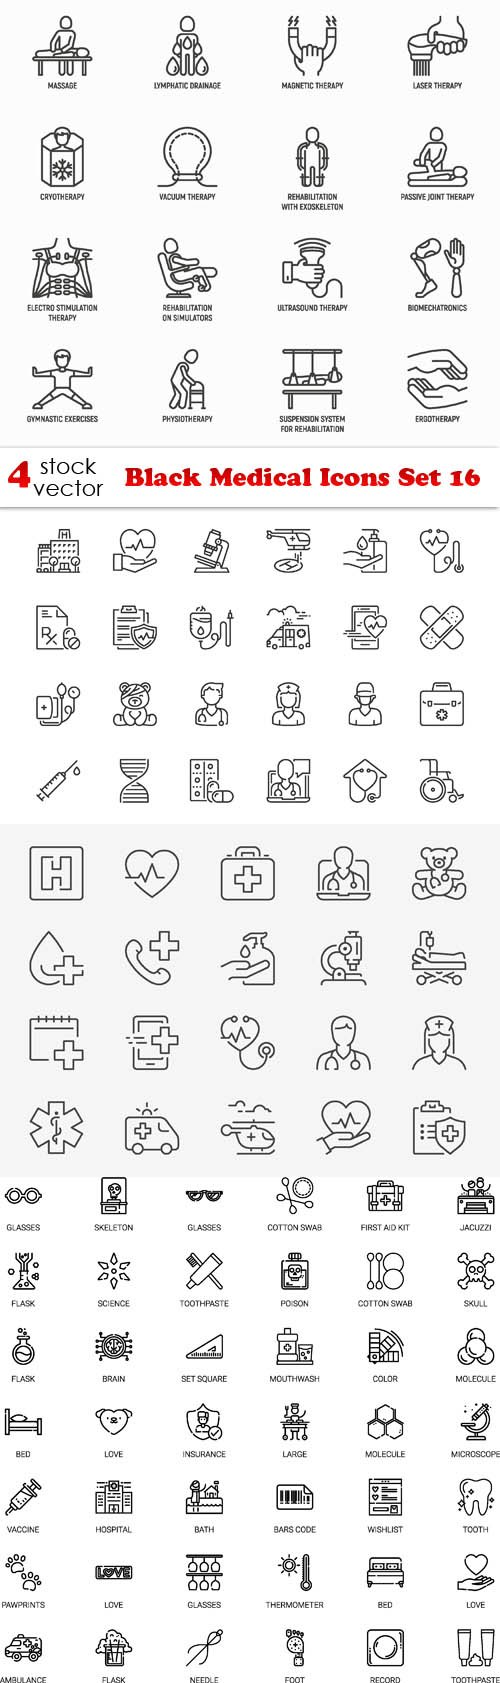 Vectors - Black Medical Icons Set 16